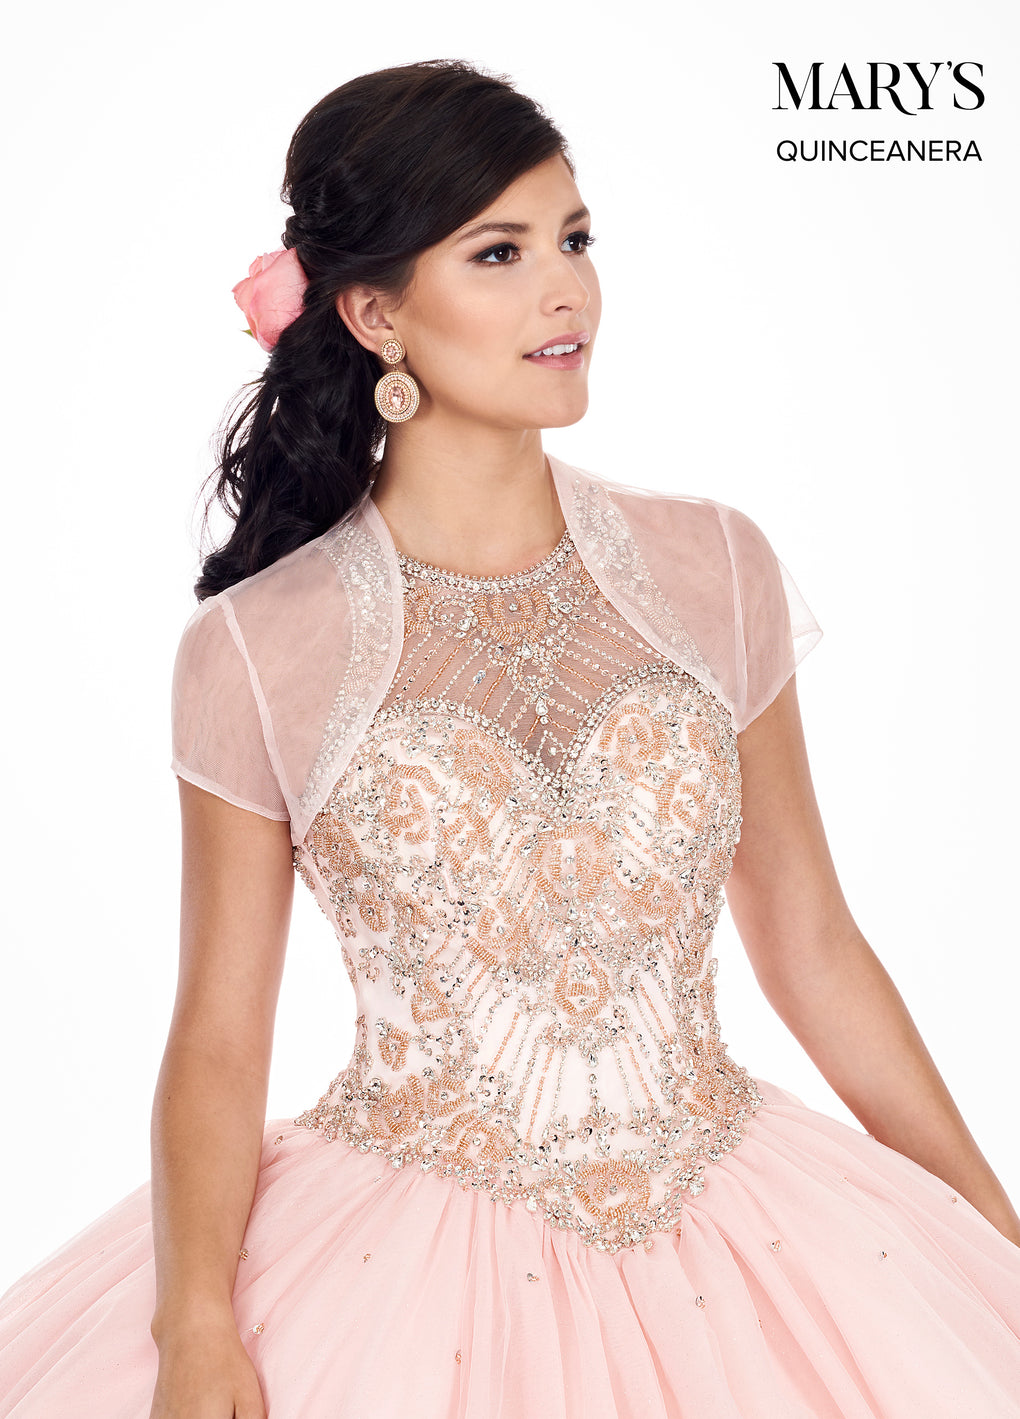 Marys Quinceanera Dresses in Blush/Rose Gold or Burgundy/Gold Color